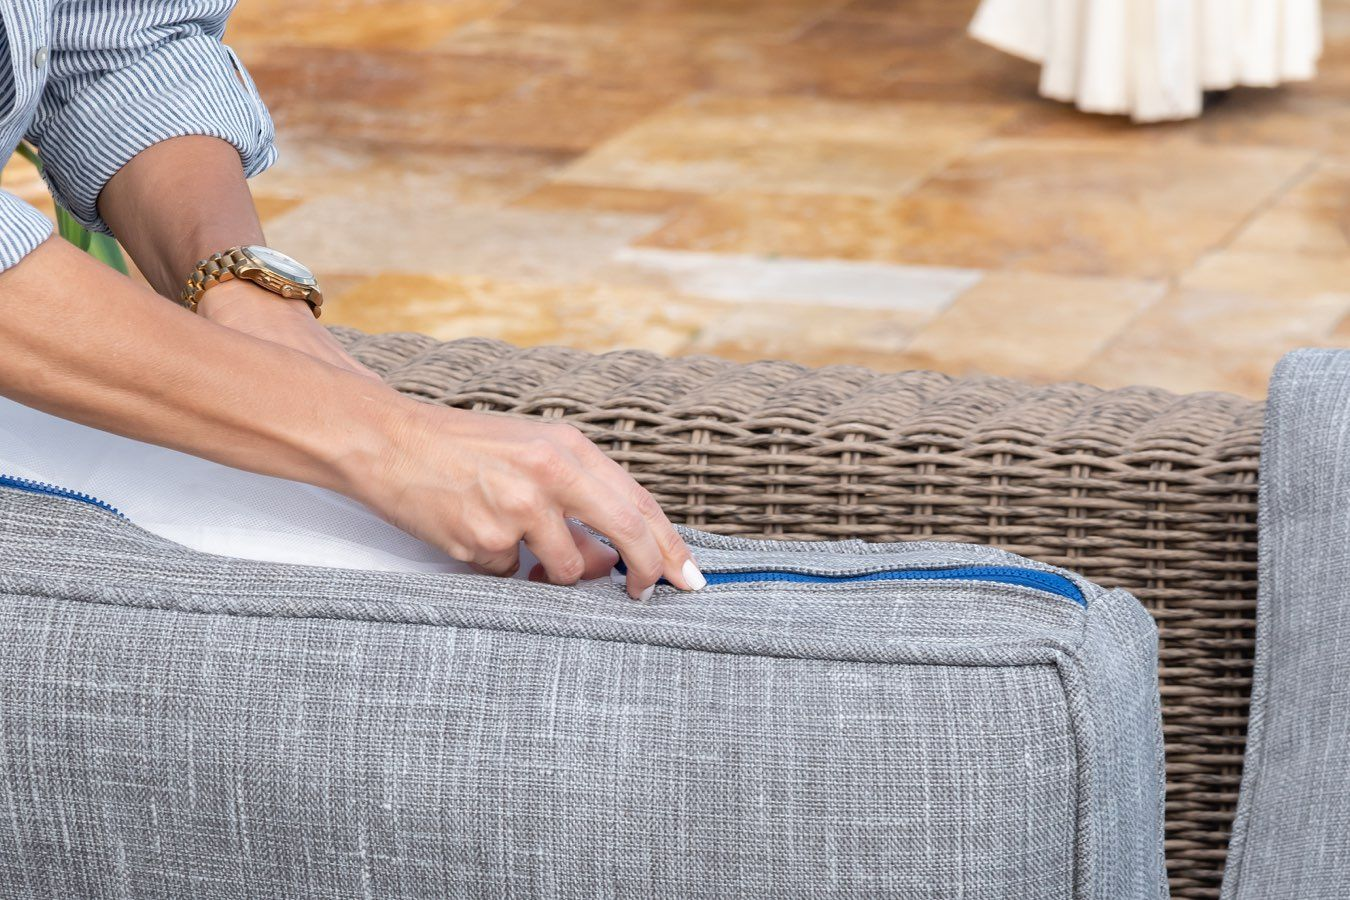 Woman putting stuffing back in fabric for cushion of patio furniture